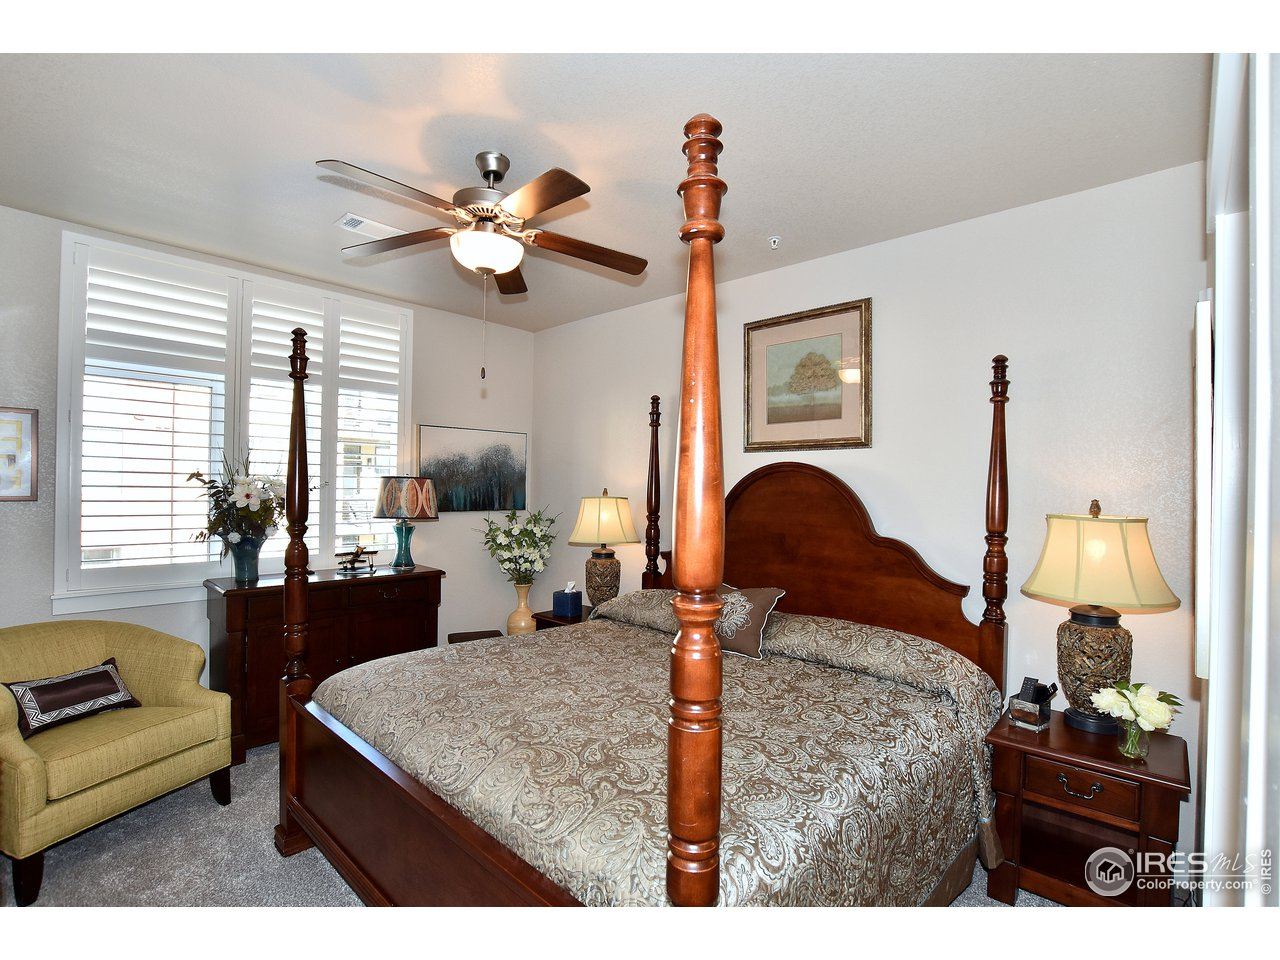 Spacious master suite with views of the front courtyard/gazebo